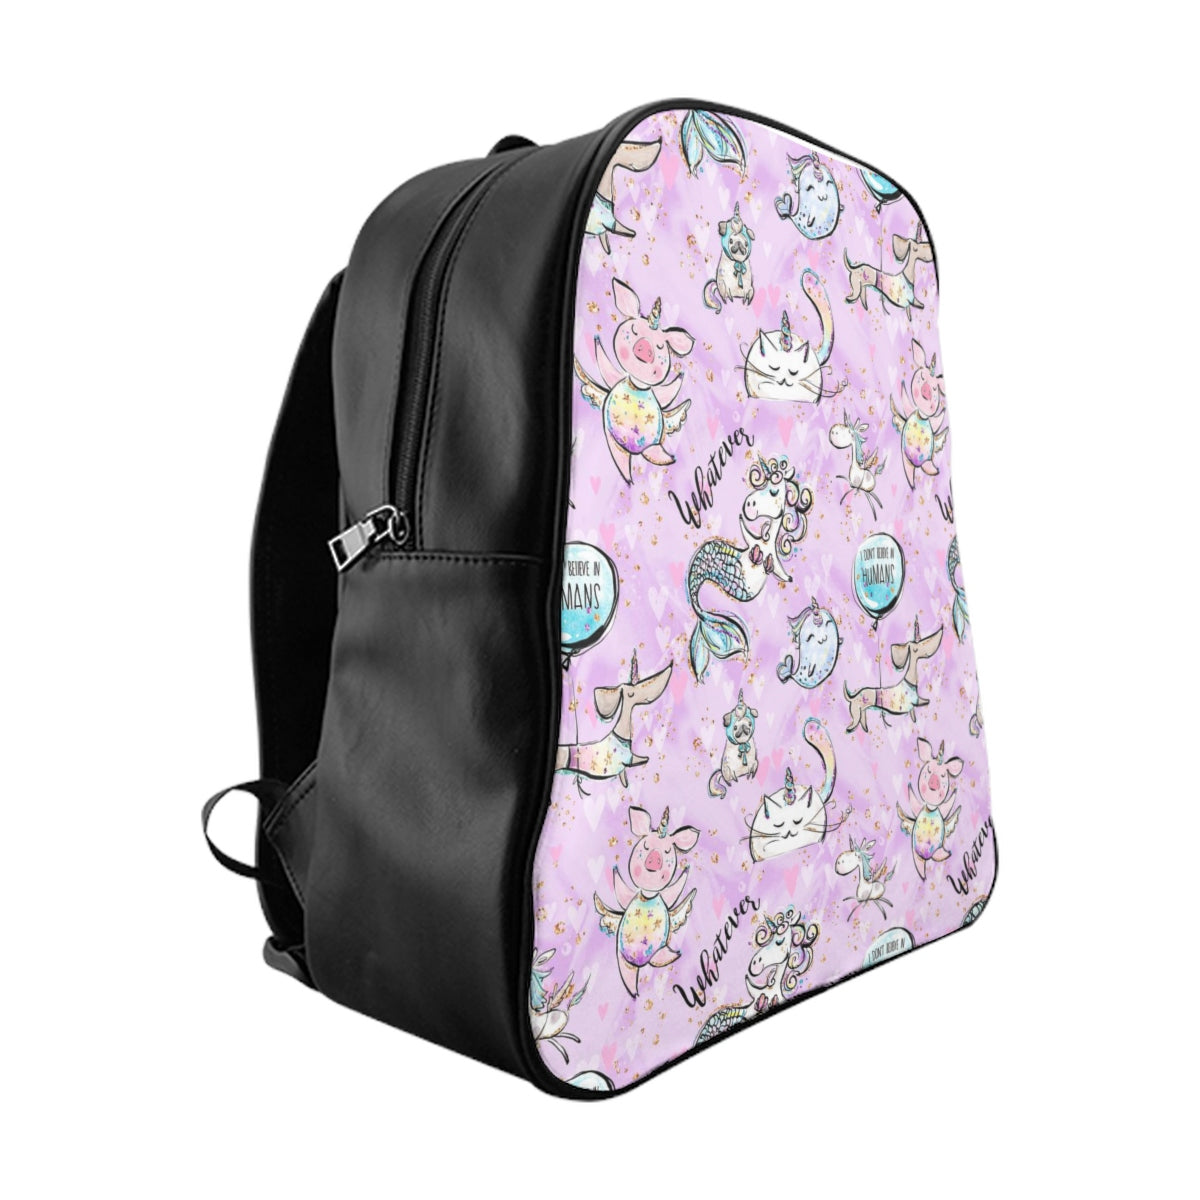 I don't Believe in Humans Magical School Backpack - Mermaids and Minis